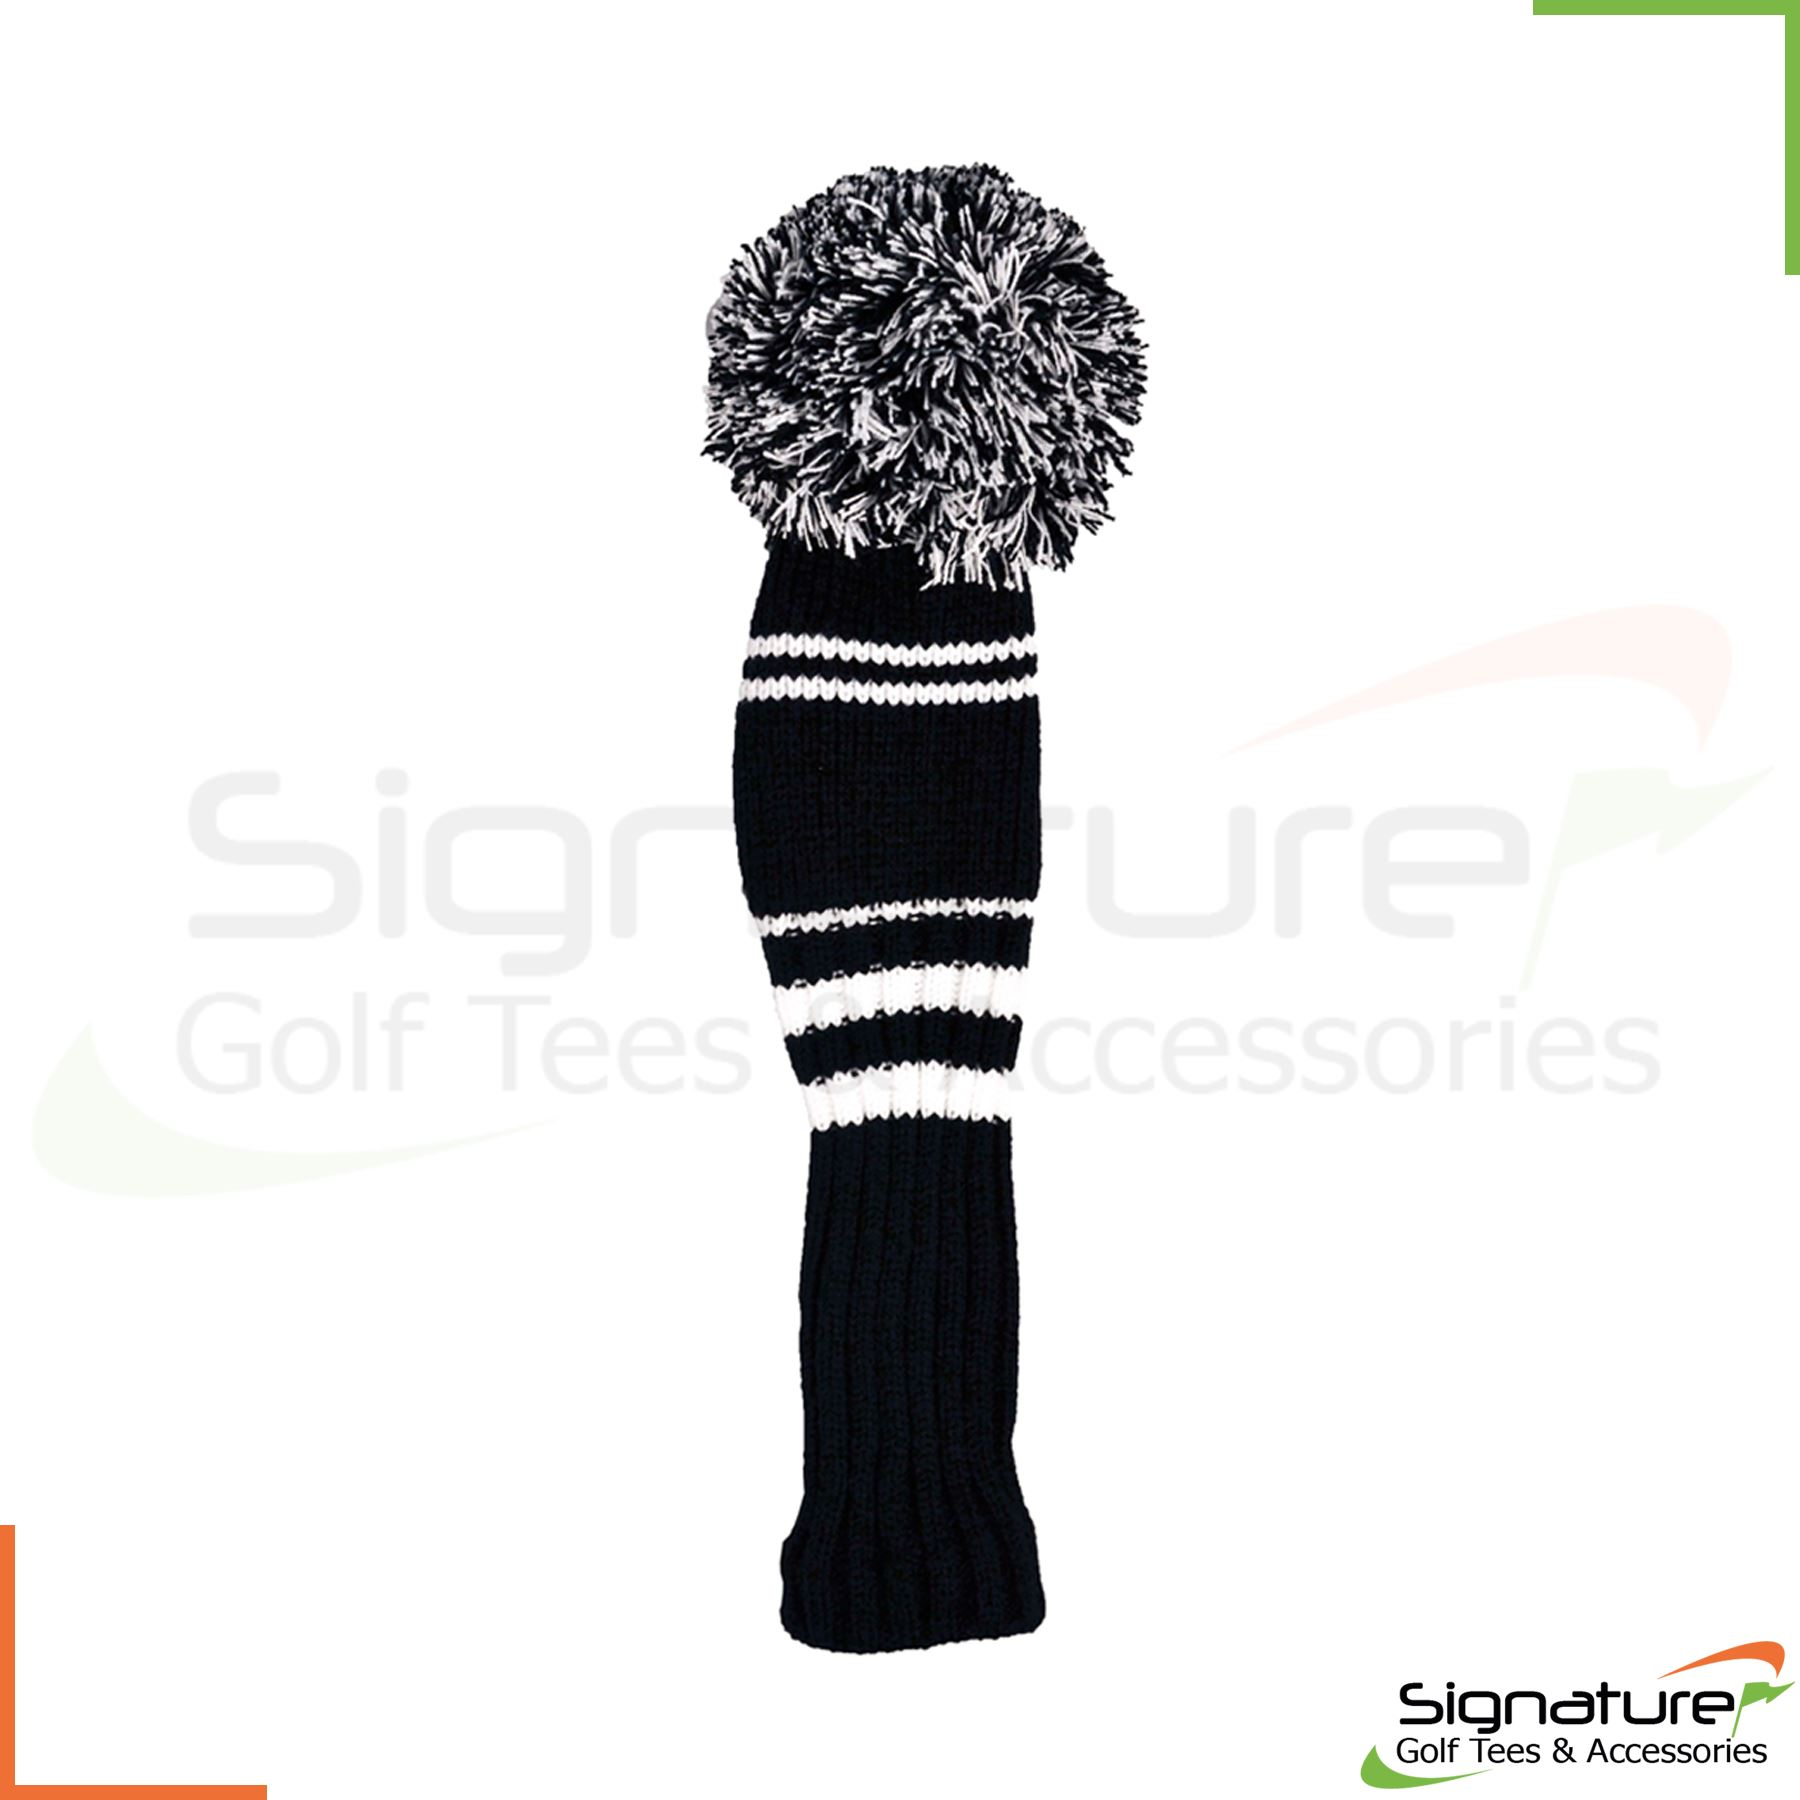 Premium-Knitted-Pom-Pom-Golf-Club-Headcovers-Black-White